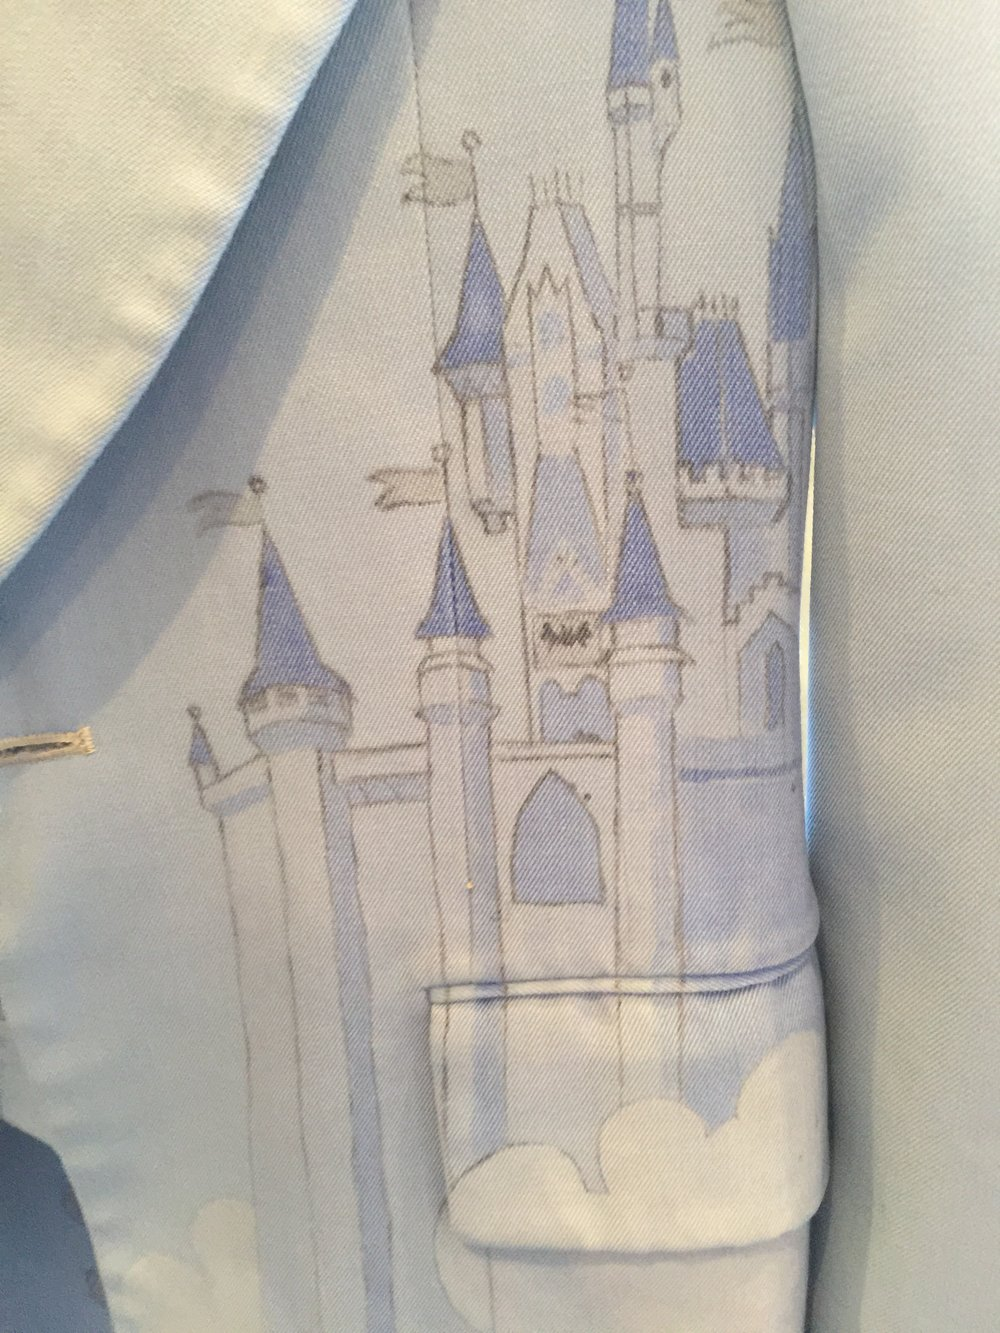 Disney suit castle (faded)